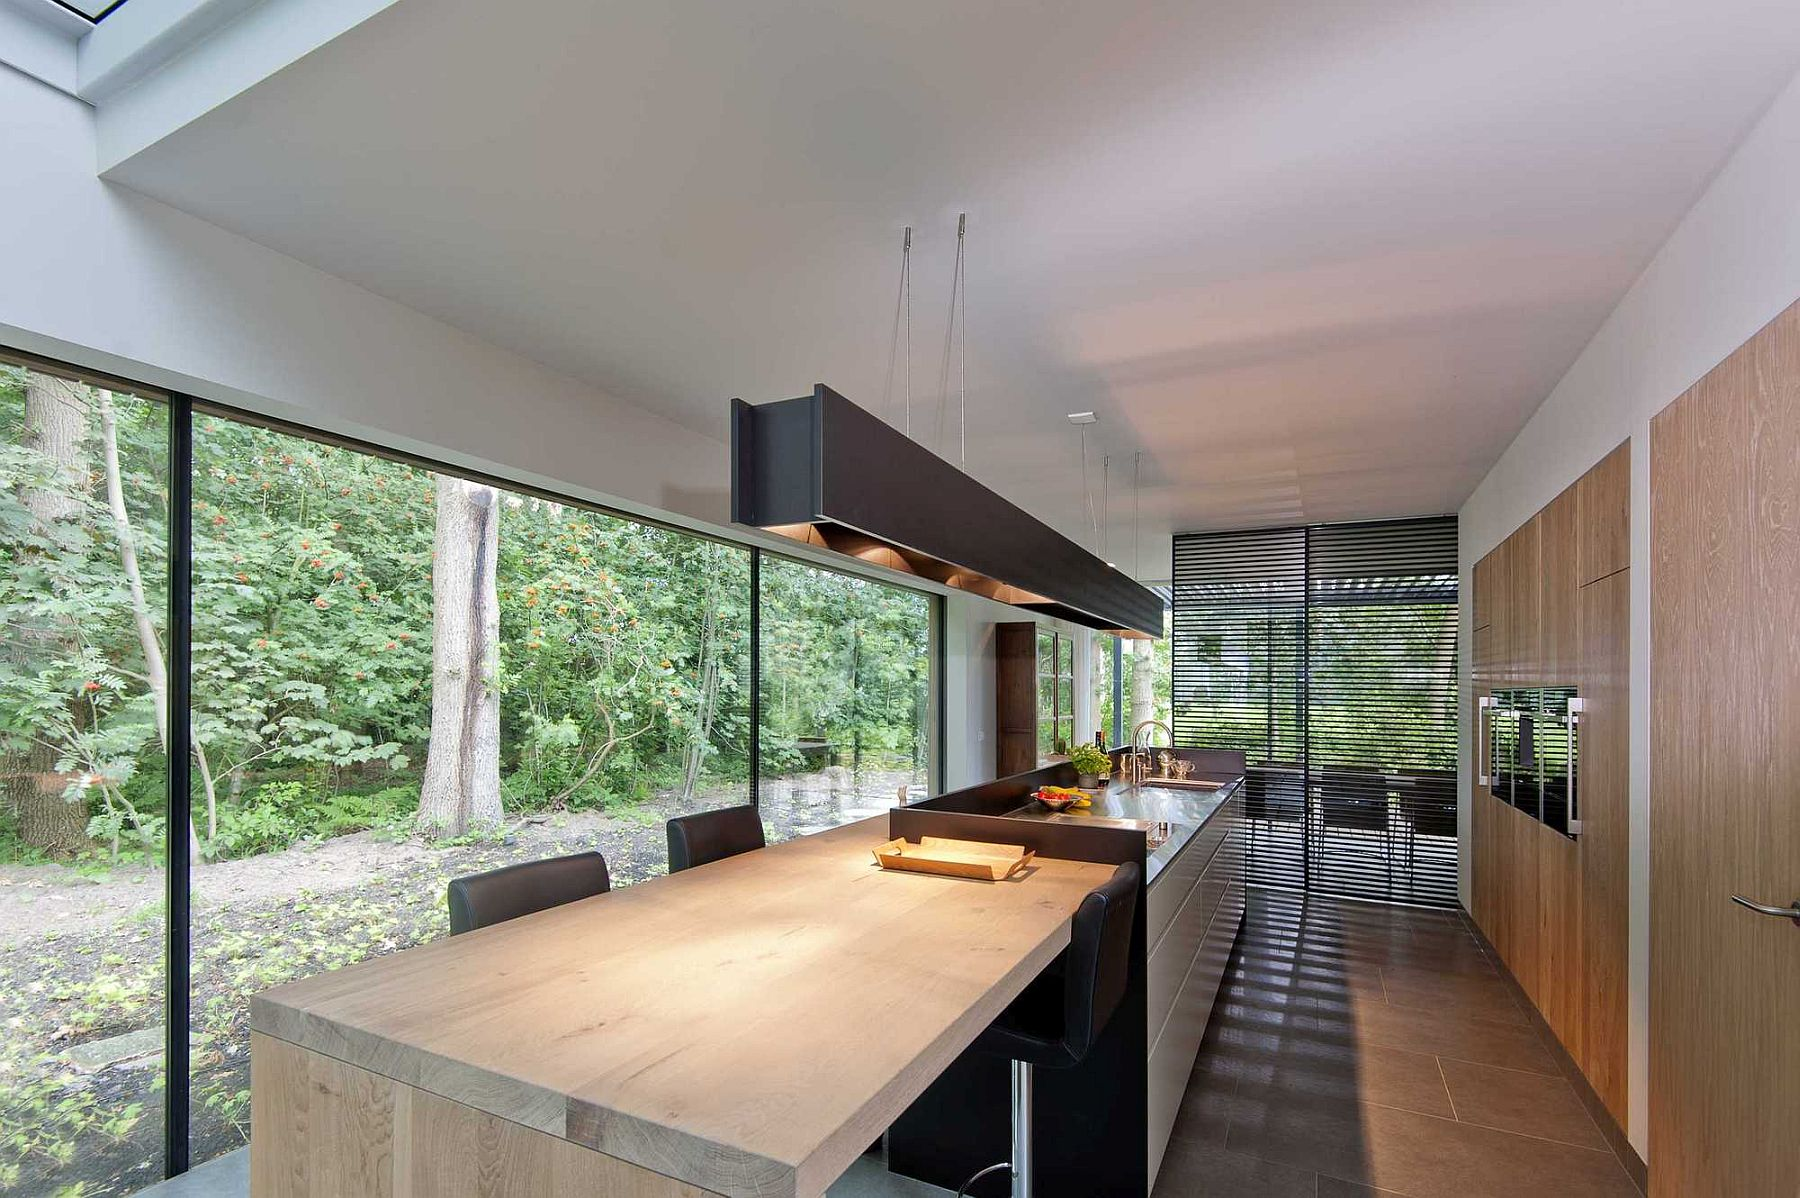 Long-kitchen-island-in-black-with-a-cool-wooden-breakfast-nook-and-dining-zone-next-to-it